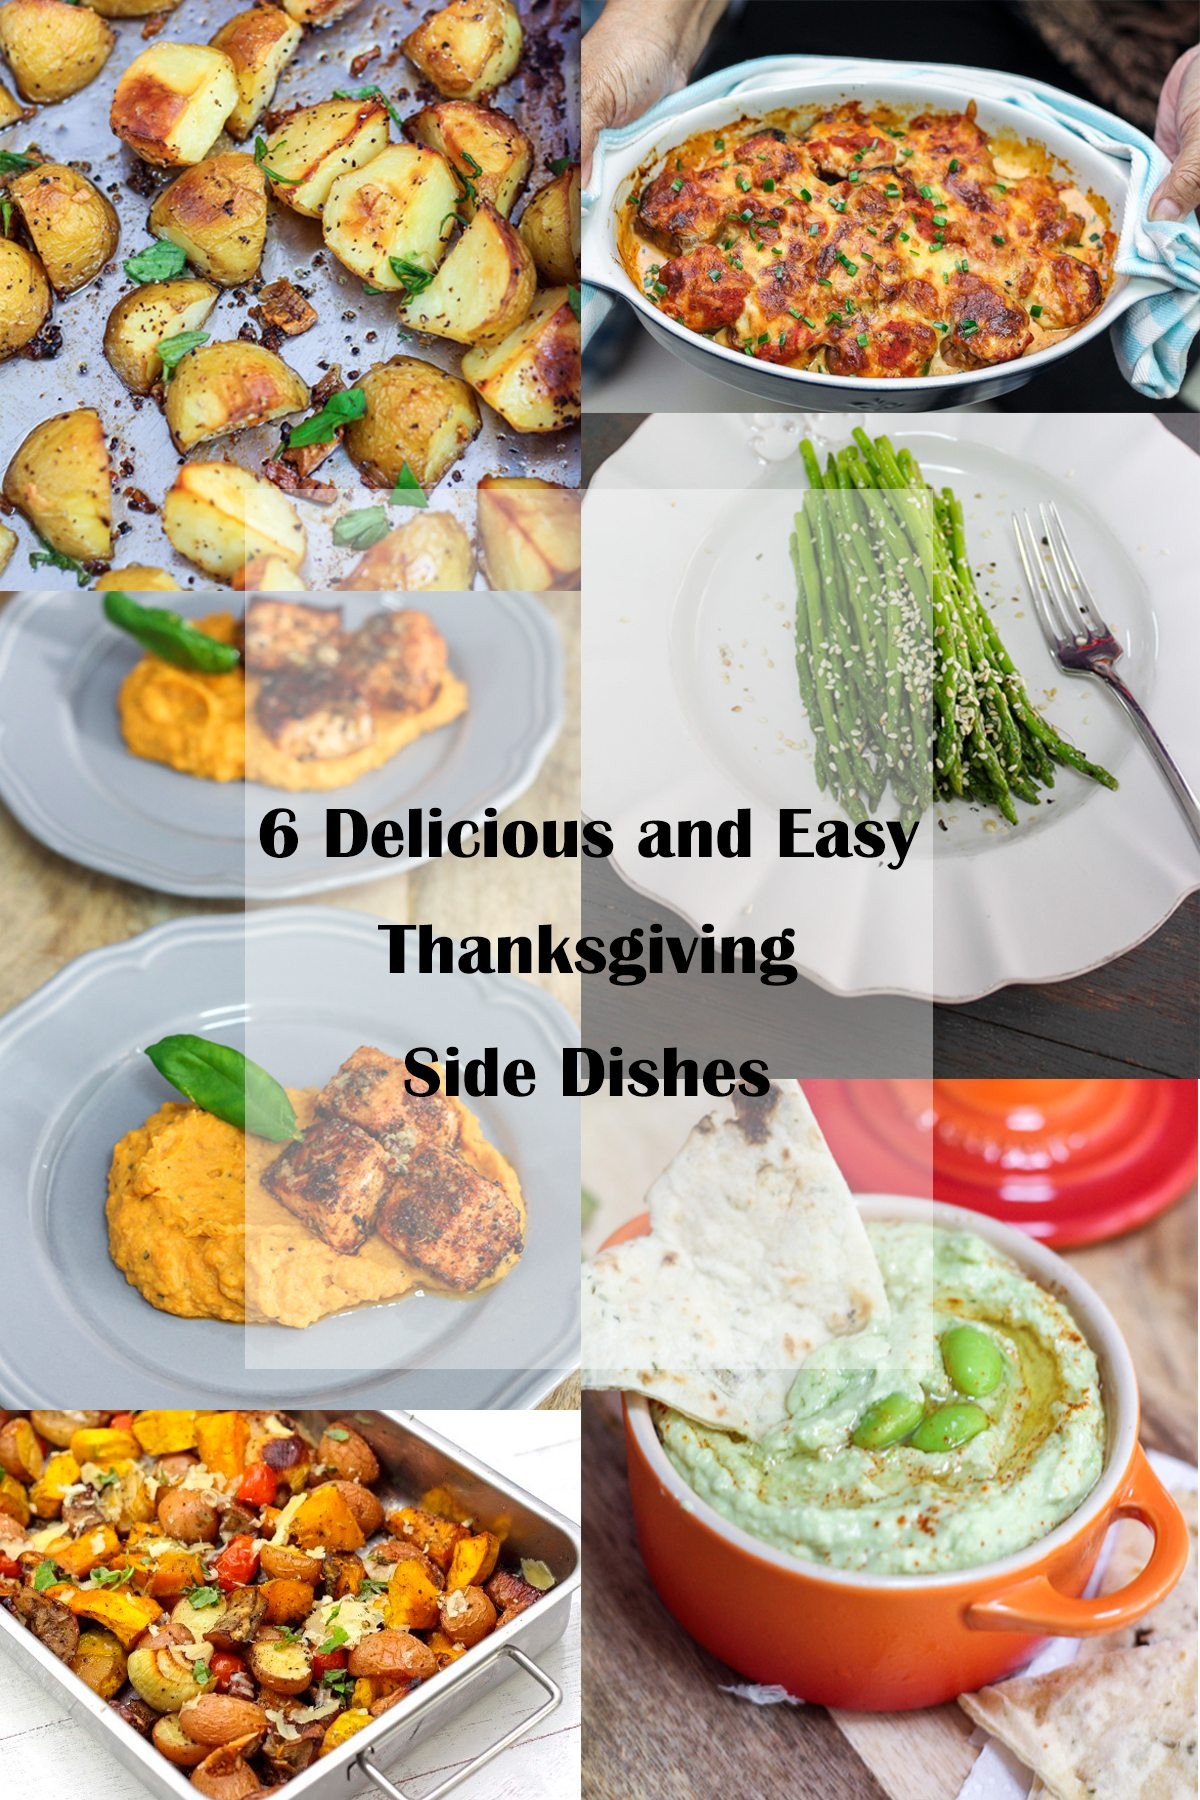 Easy Thanksgiving Side Dishes  6 Delicious and Easy Thanksgiving Side Dishes